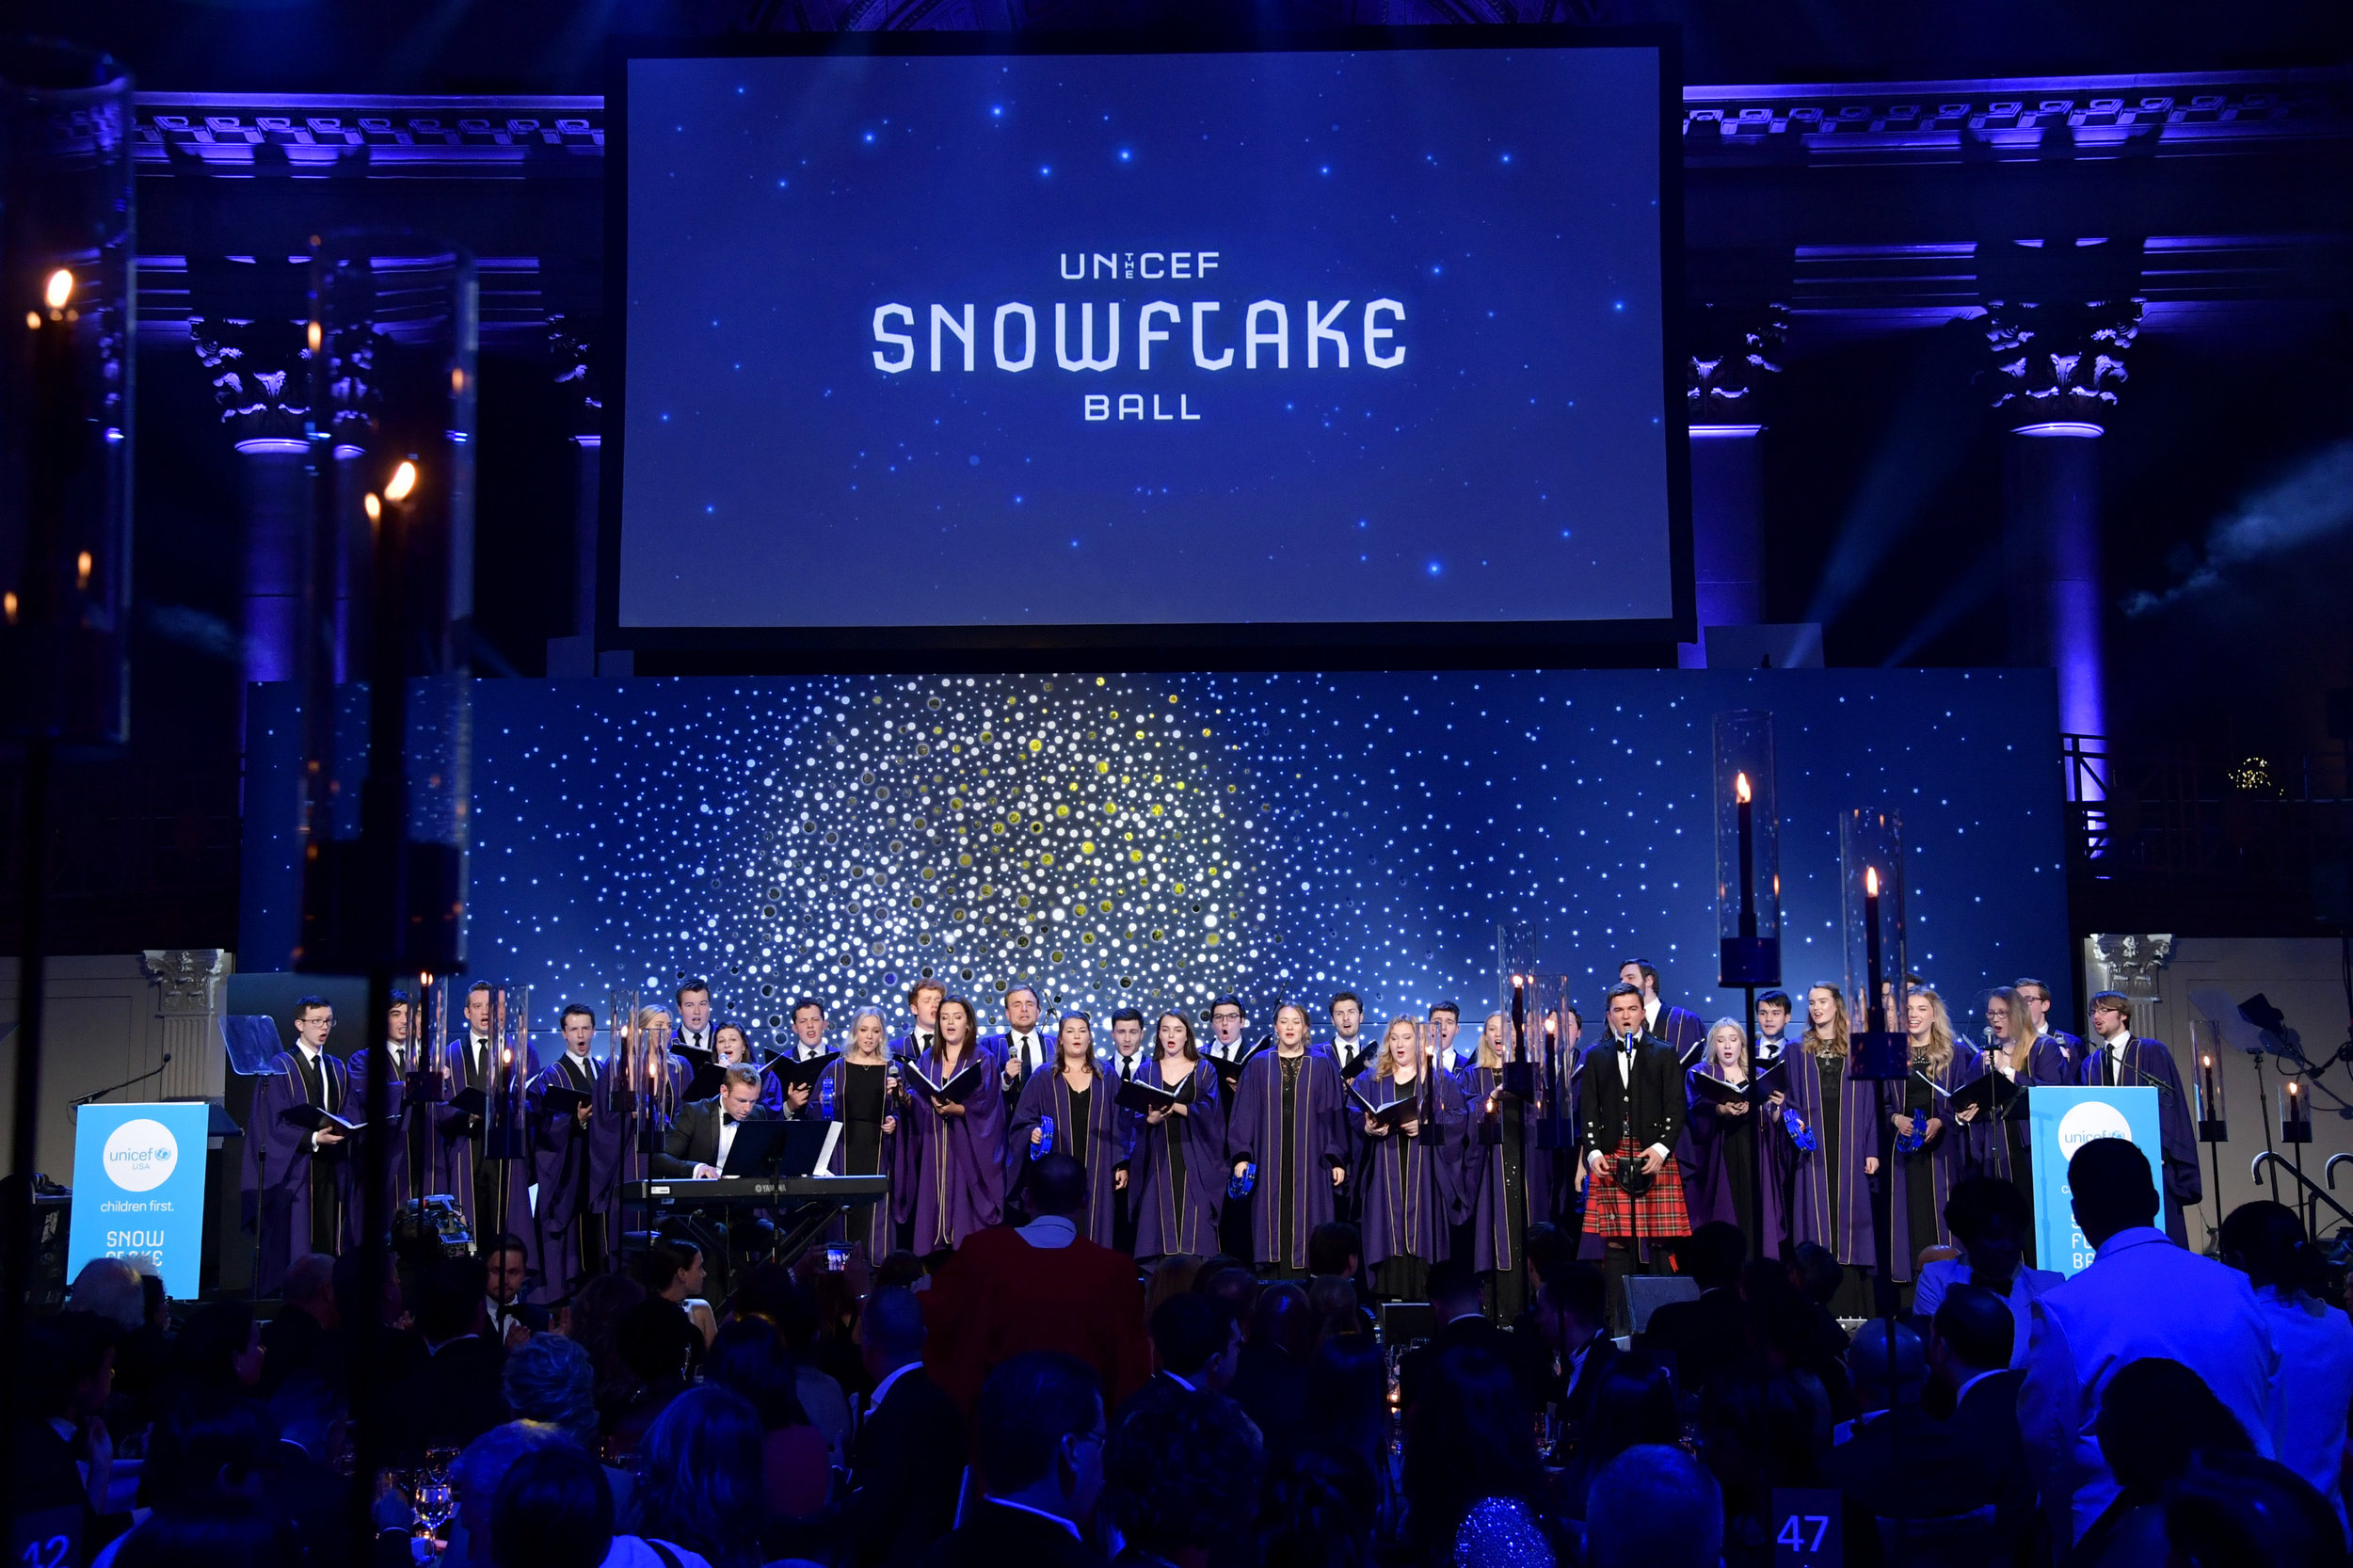 NEW YORK, NY - NOVEMBER 27: University of Aberdeen Choir performs onstage during the 14th Annual UNICEF Snowflake Ball 2018 on November 27, 2018 in New York City. (Photo by Michael Loccisano/Getty Images for UNICEF)